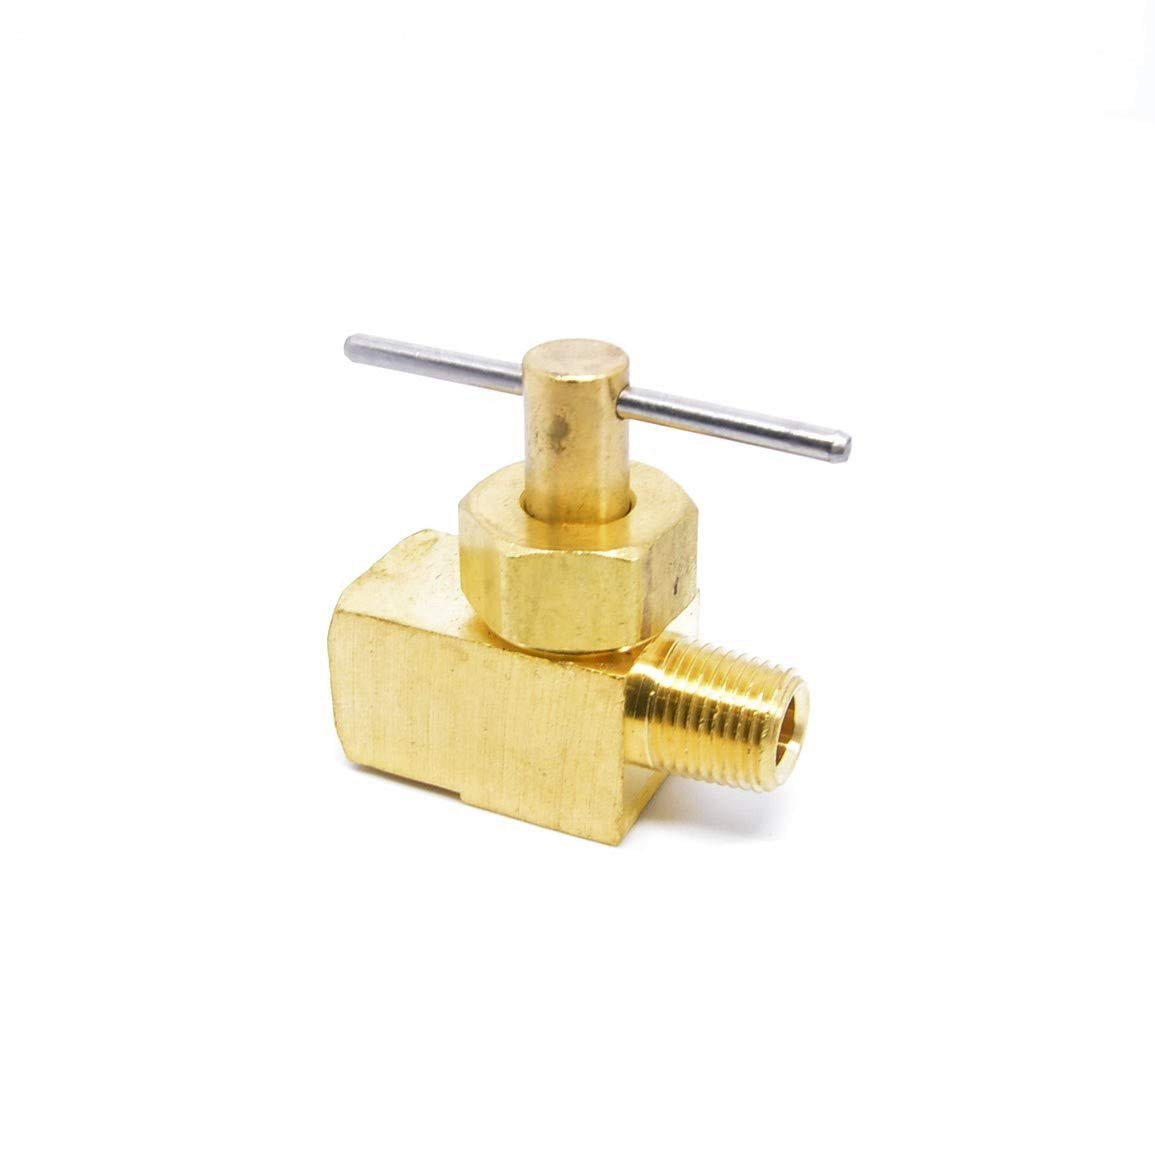 KTS Brass Needle Valve 8mm I//D Hose Barb only for Gas Max Pressure 0.8 Mpa